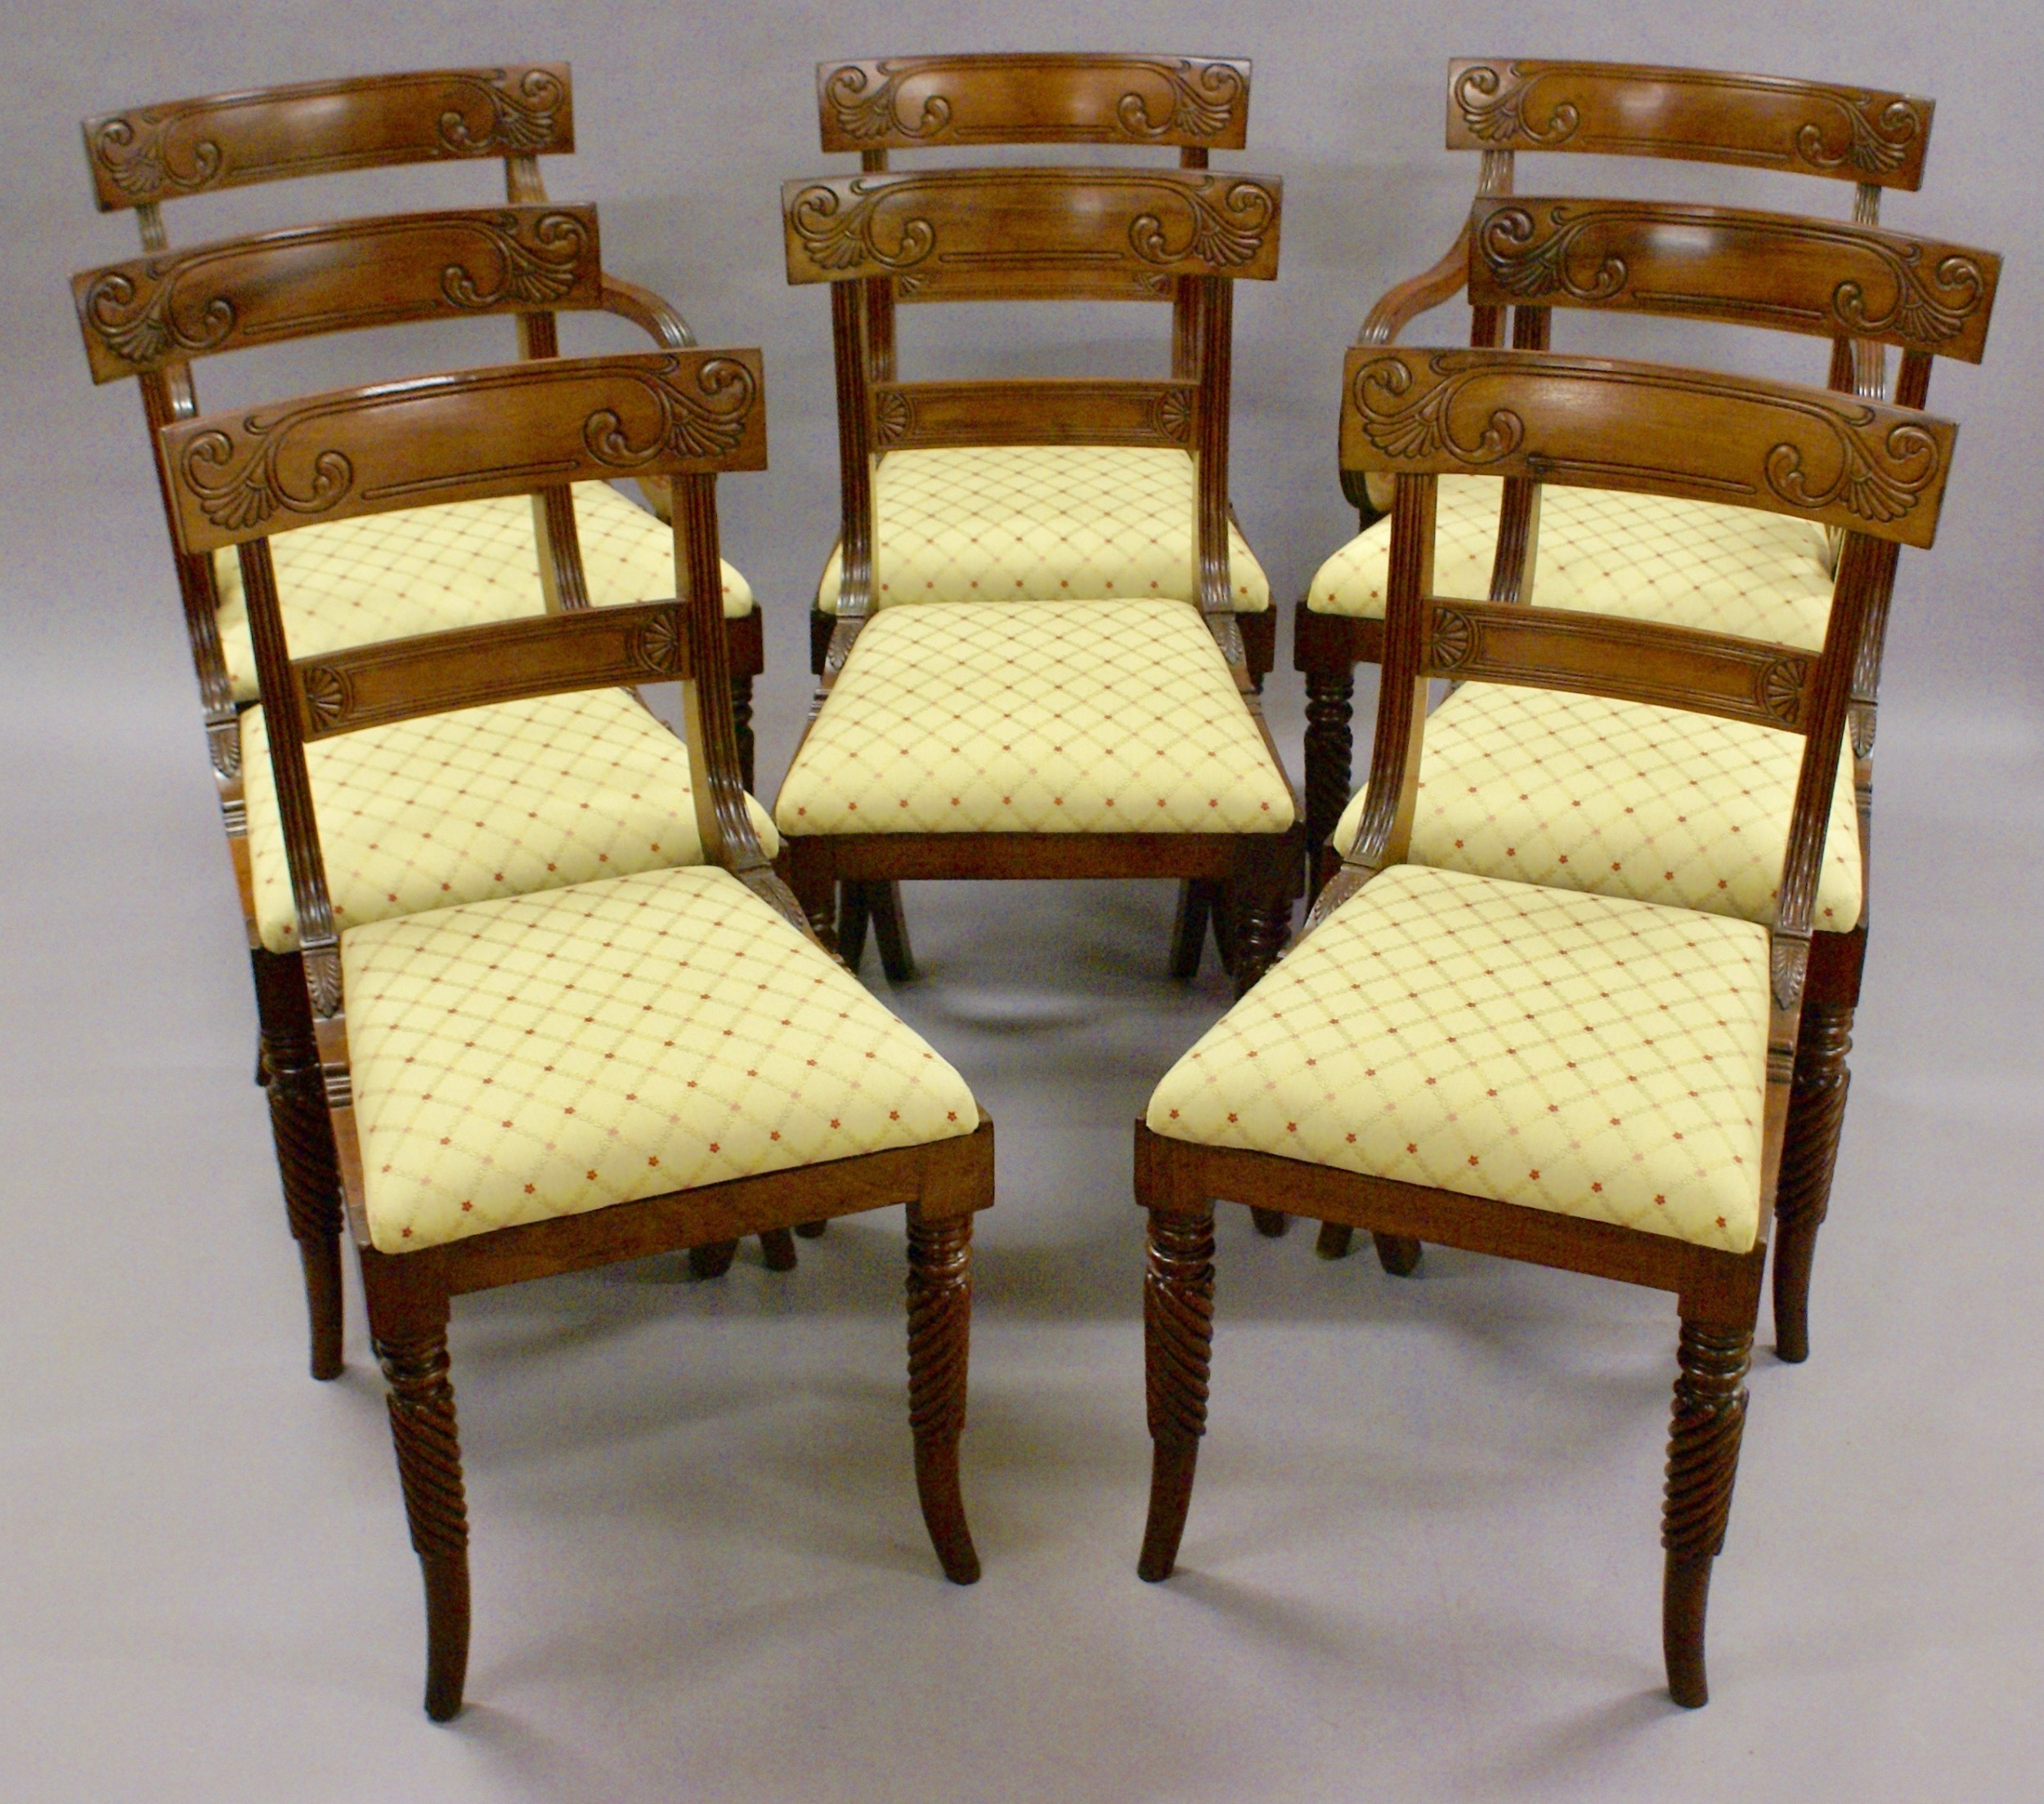 a fine set of 8 chairs attributed to gillows